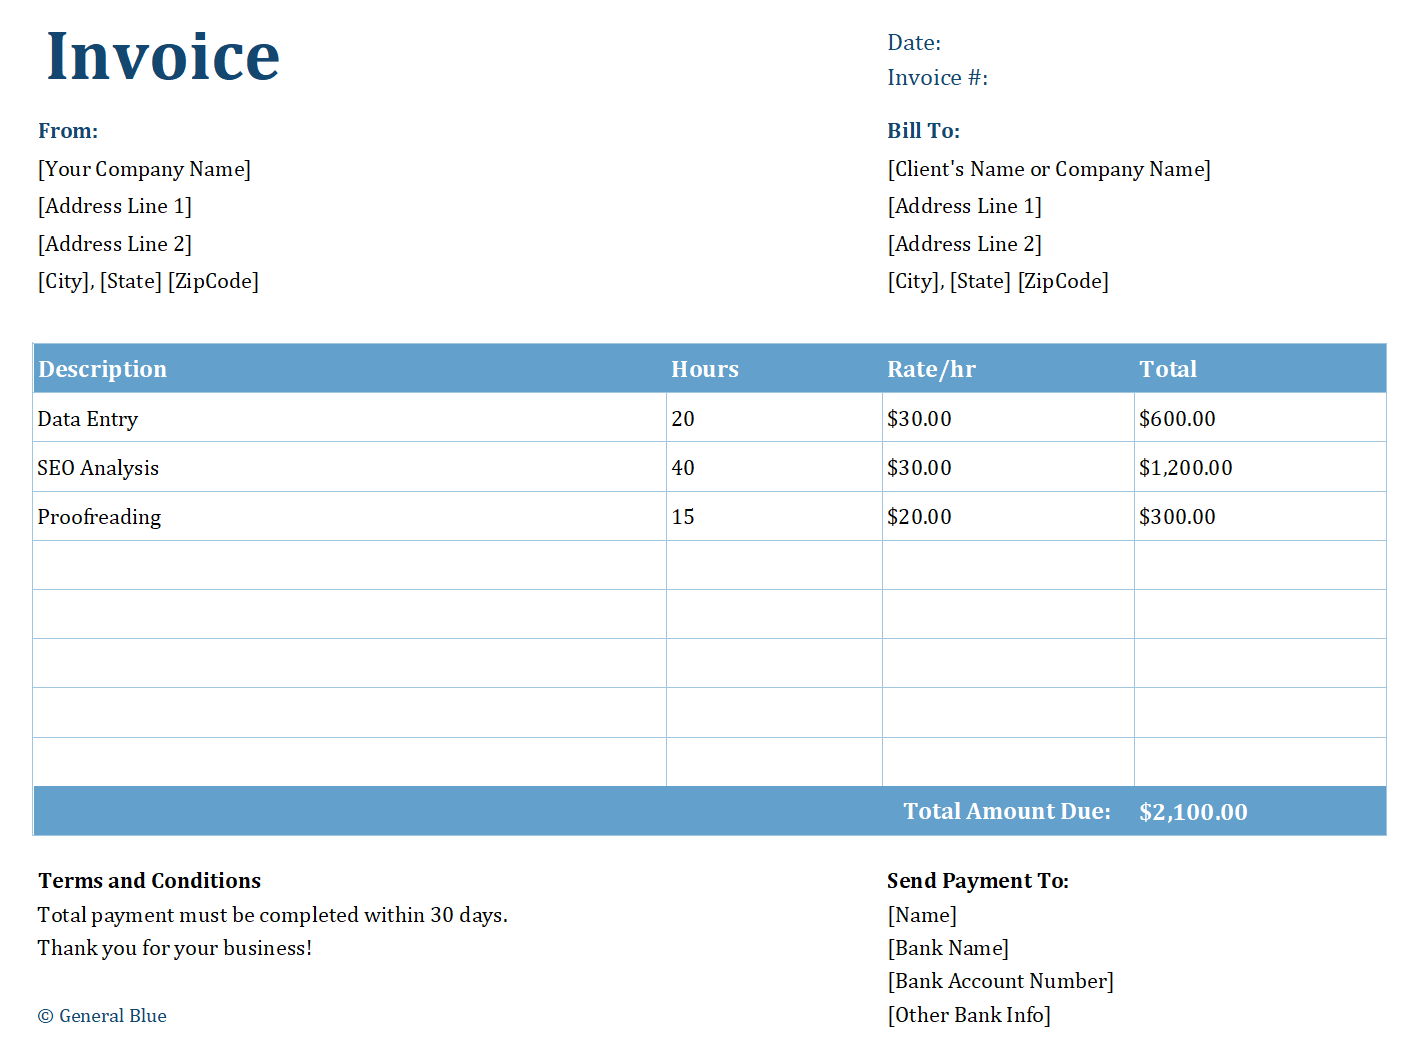 Freelancer Invoice Templates In Different Formats For Free Invoice Template Freelance Invoice Template Invoicing